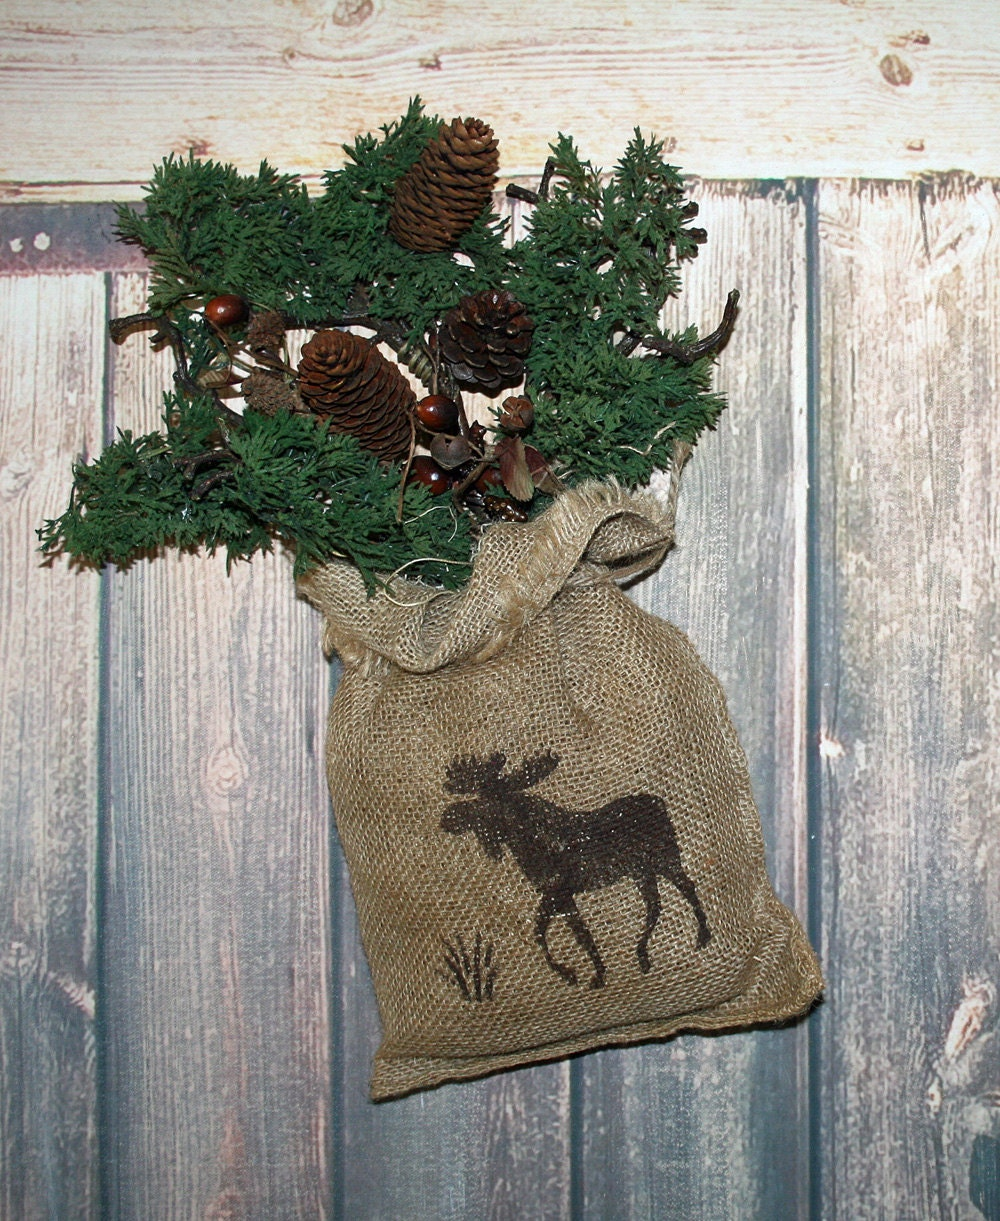 Rustic Burlap Wall Decor : Moose decor rustic hunting burlap wall